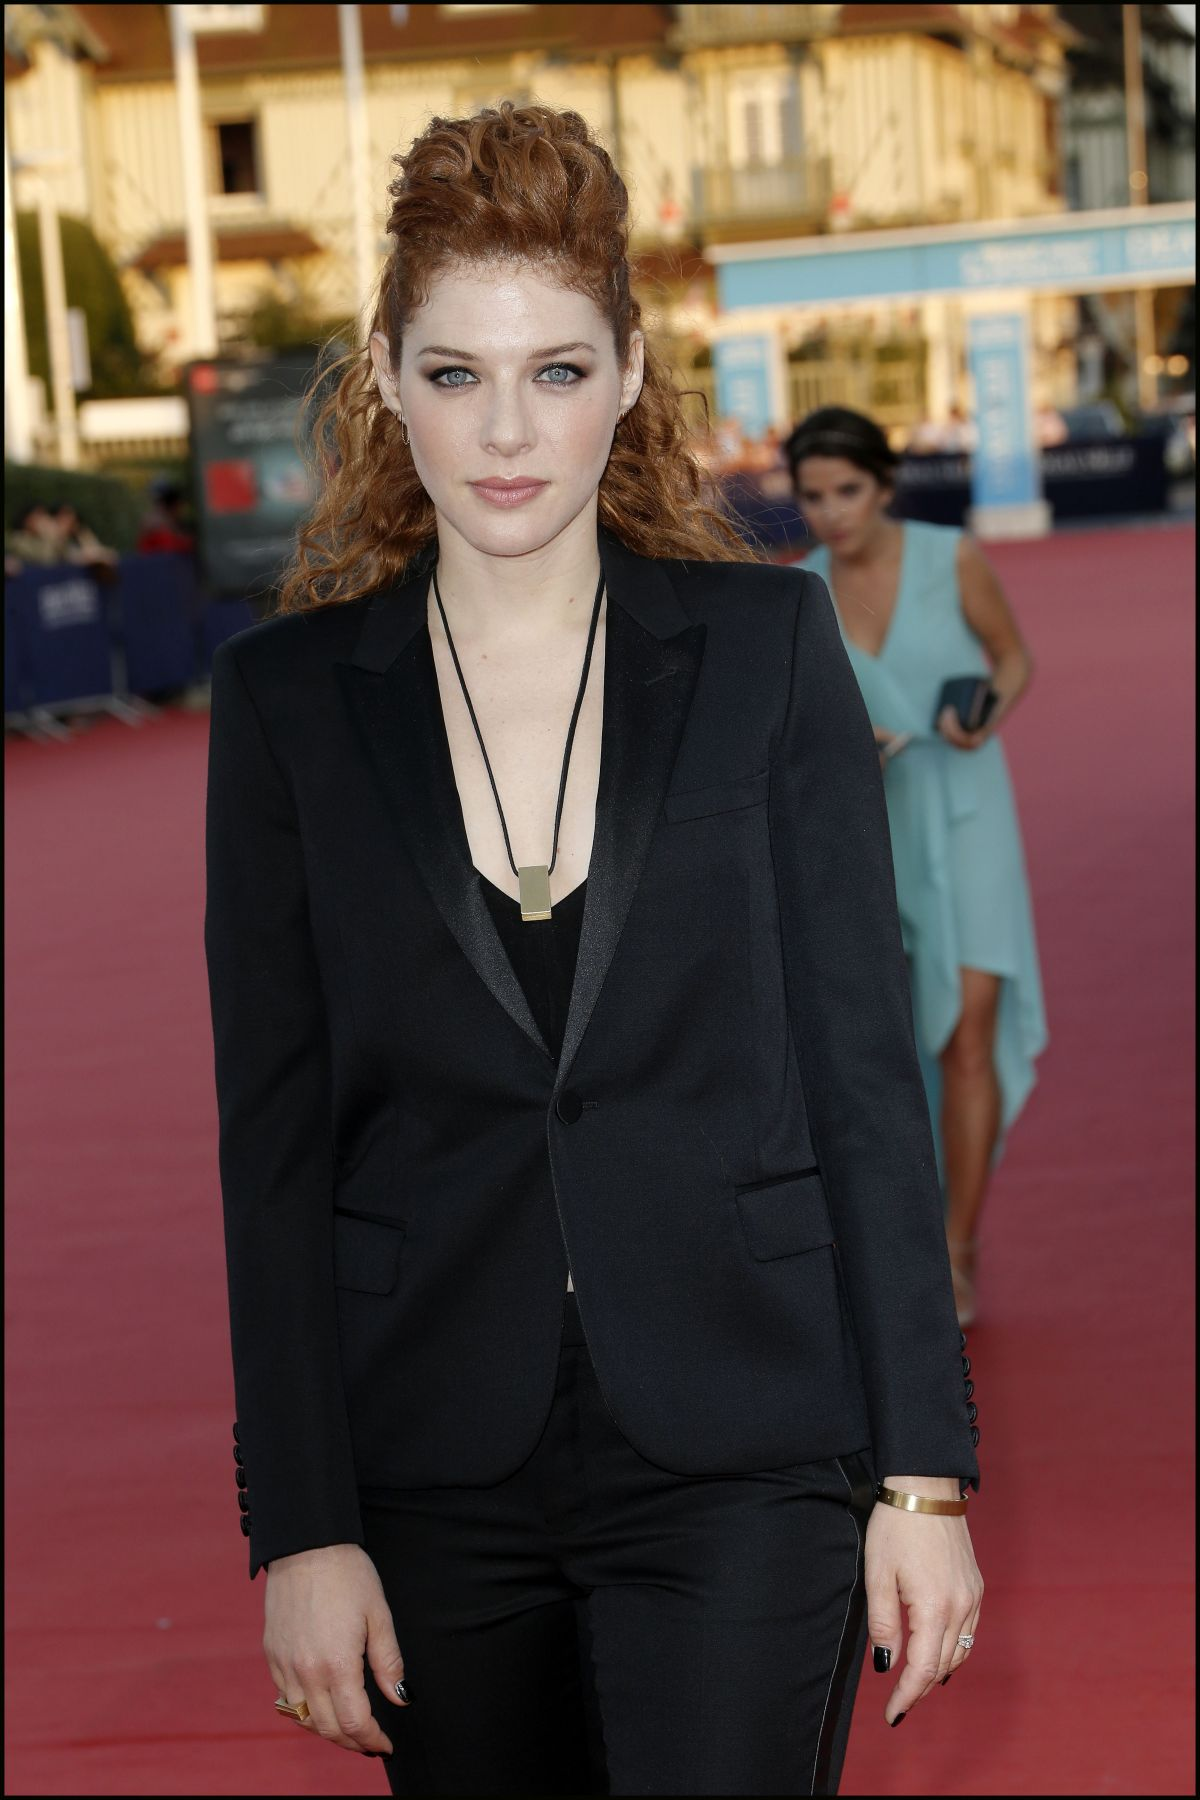 RACHELLE LEFEVRE at Ruth and Alex Premiere at 41st Deauville American Film Festival 09/09/2015